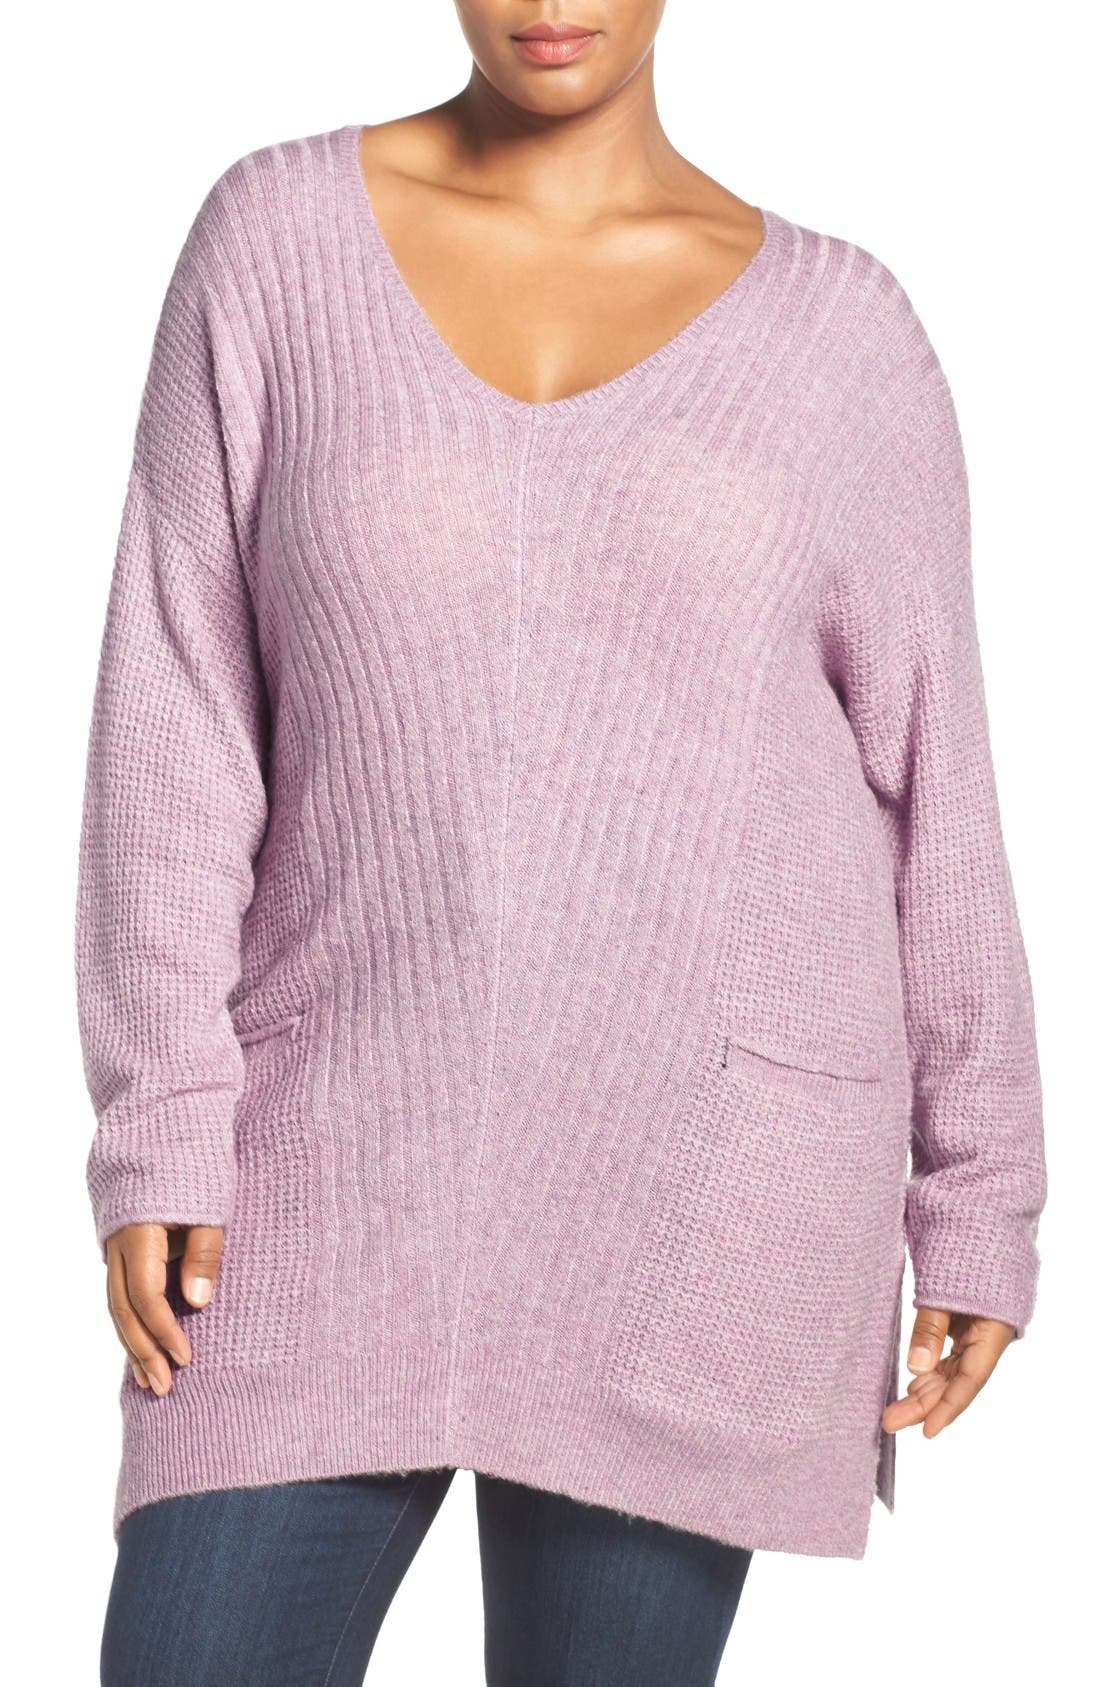 Main Image - Caslon® Mixed Stitch V-Neck Tunic Sweater (Plus Size)